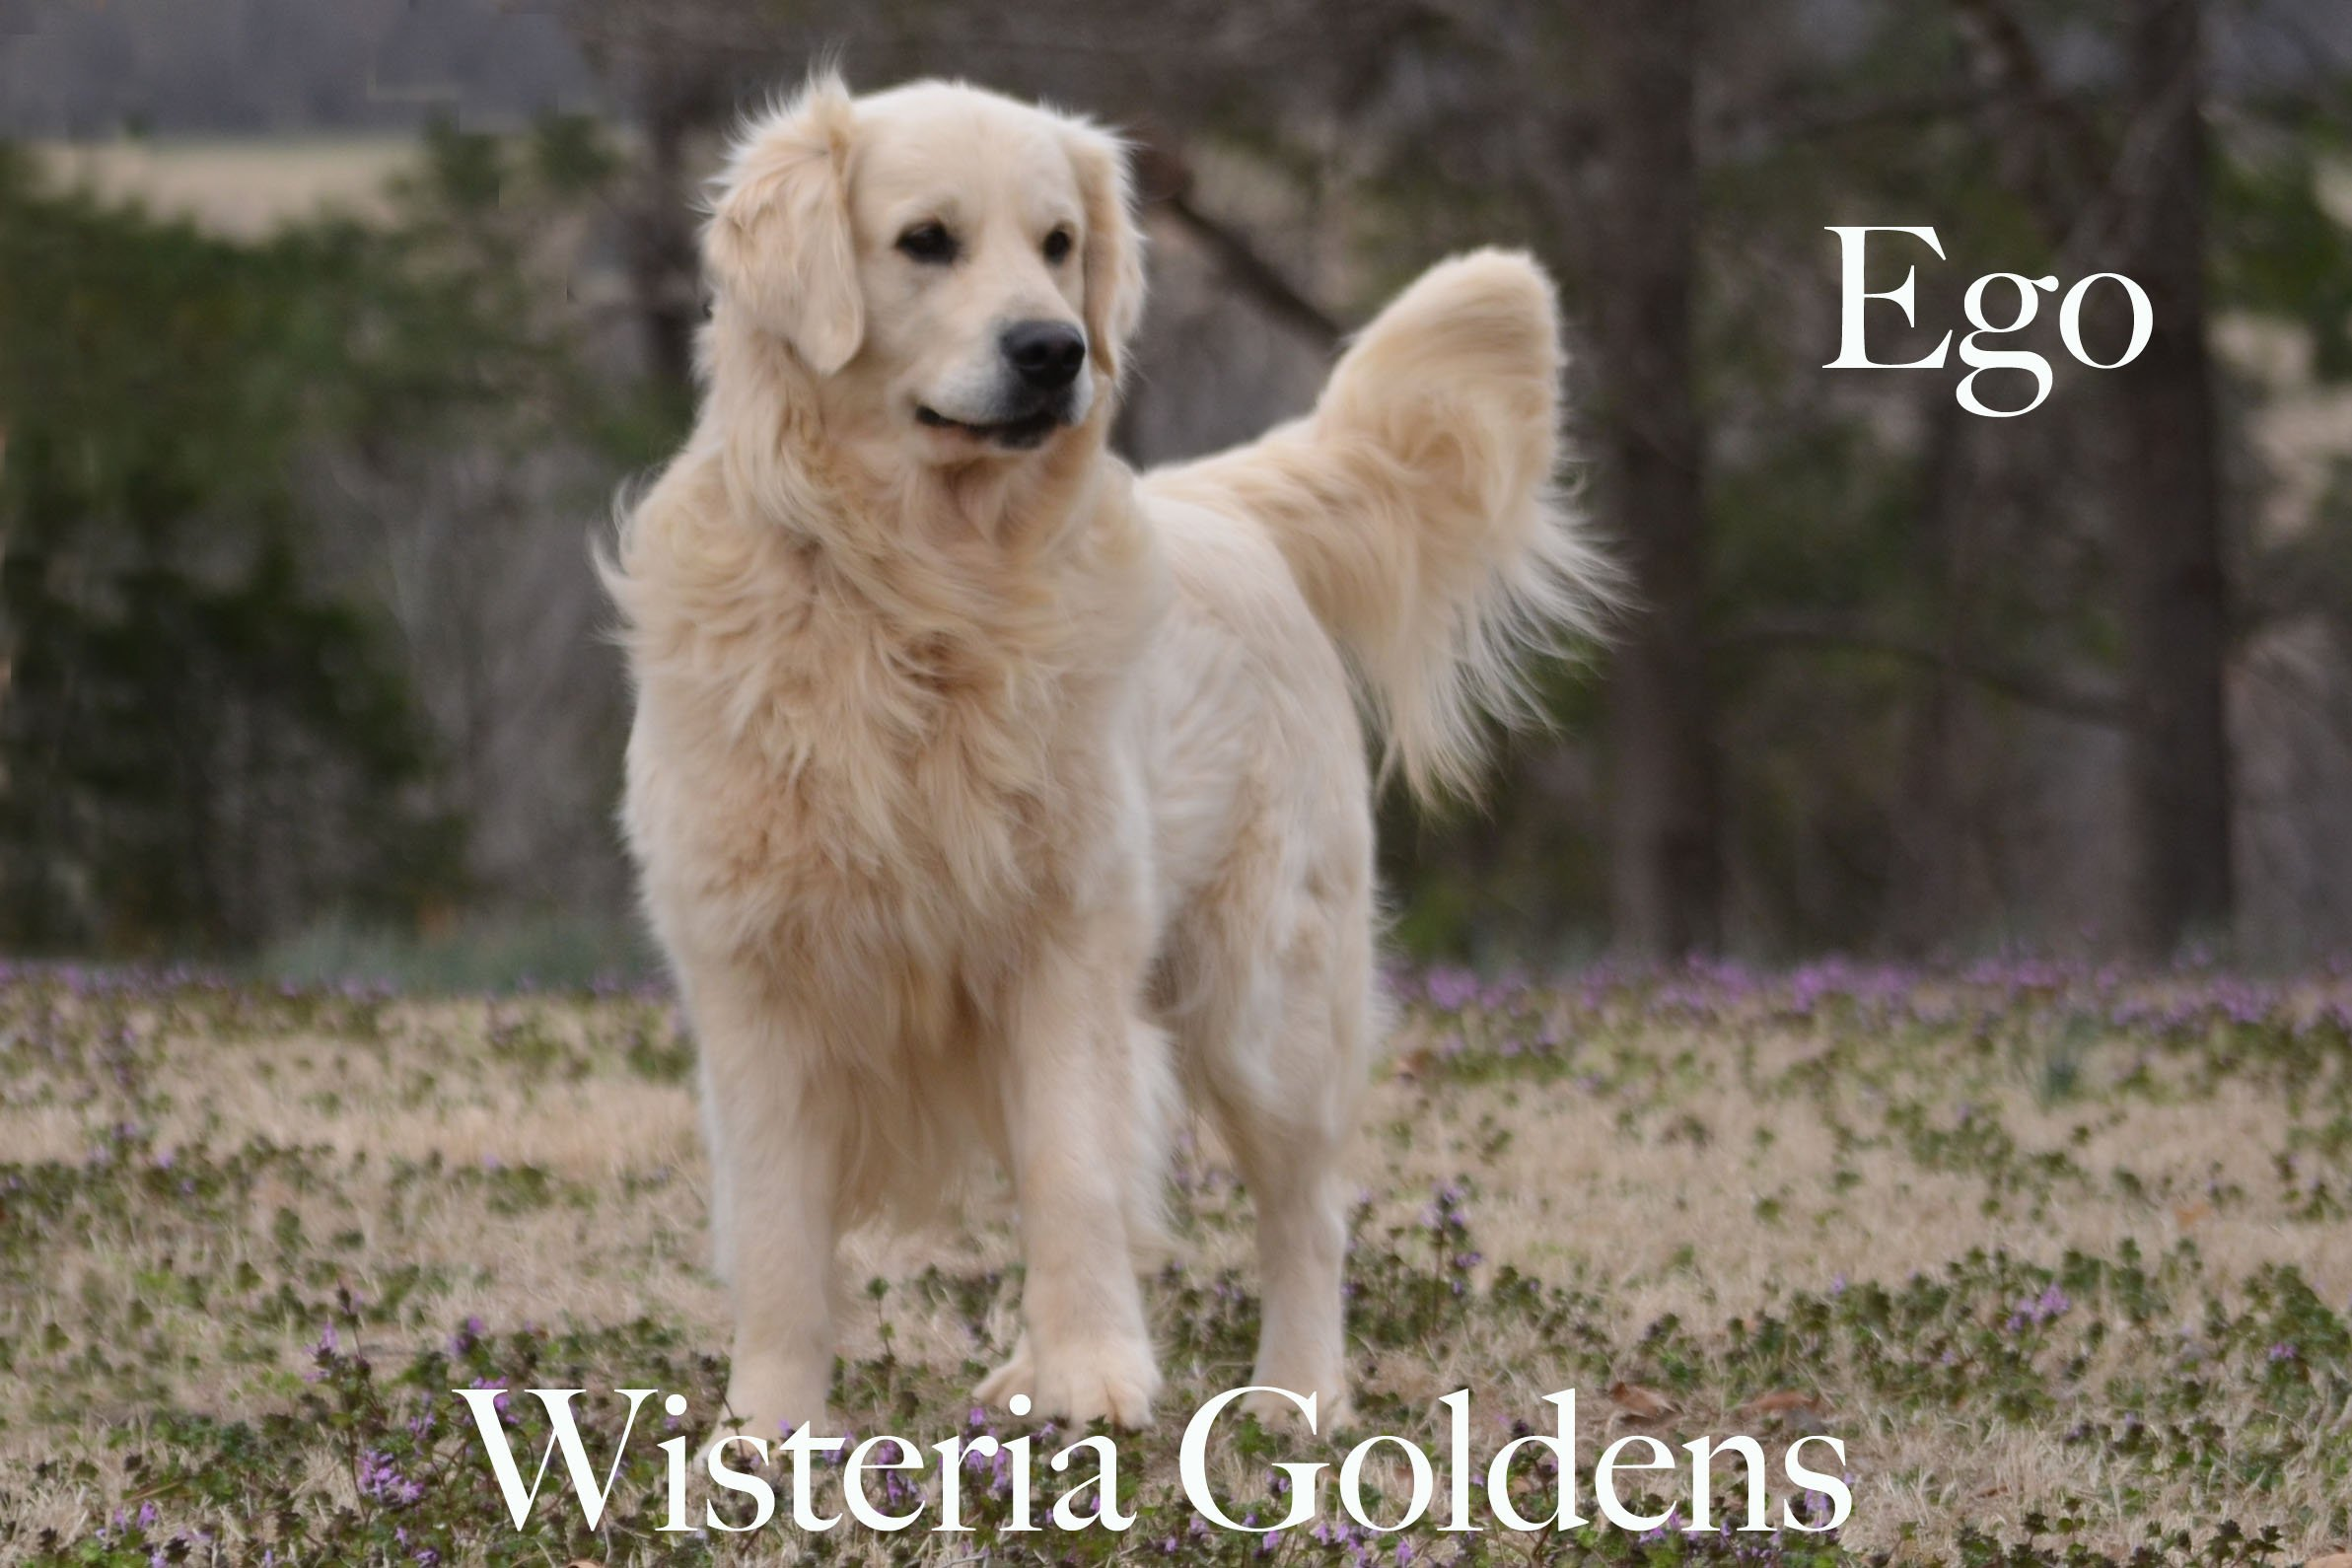 Ego_0069-full-english-creme-golden-retrievers-wisteria-goldens